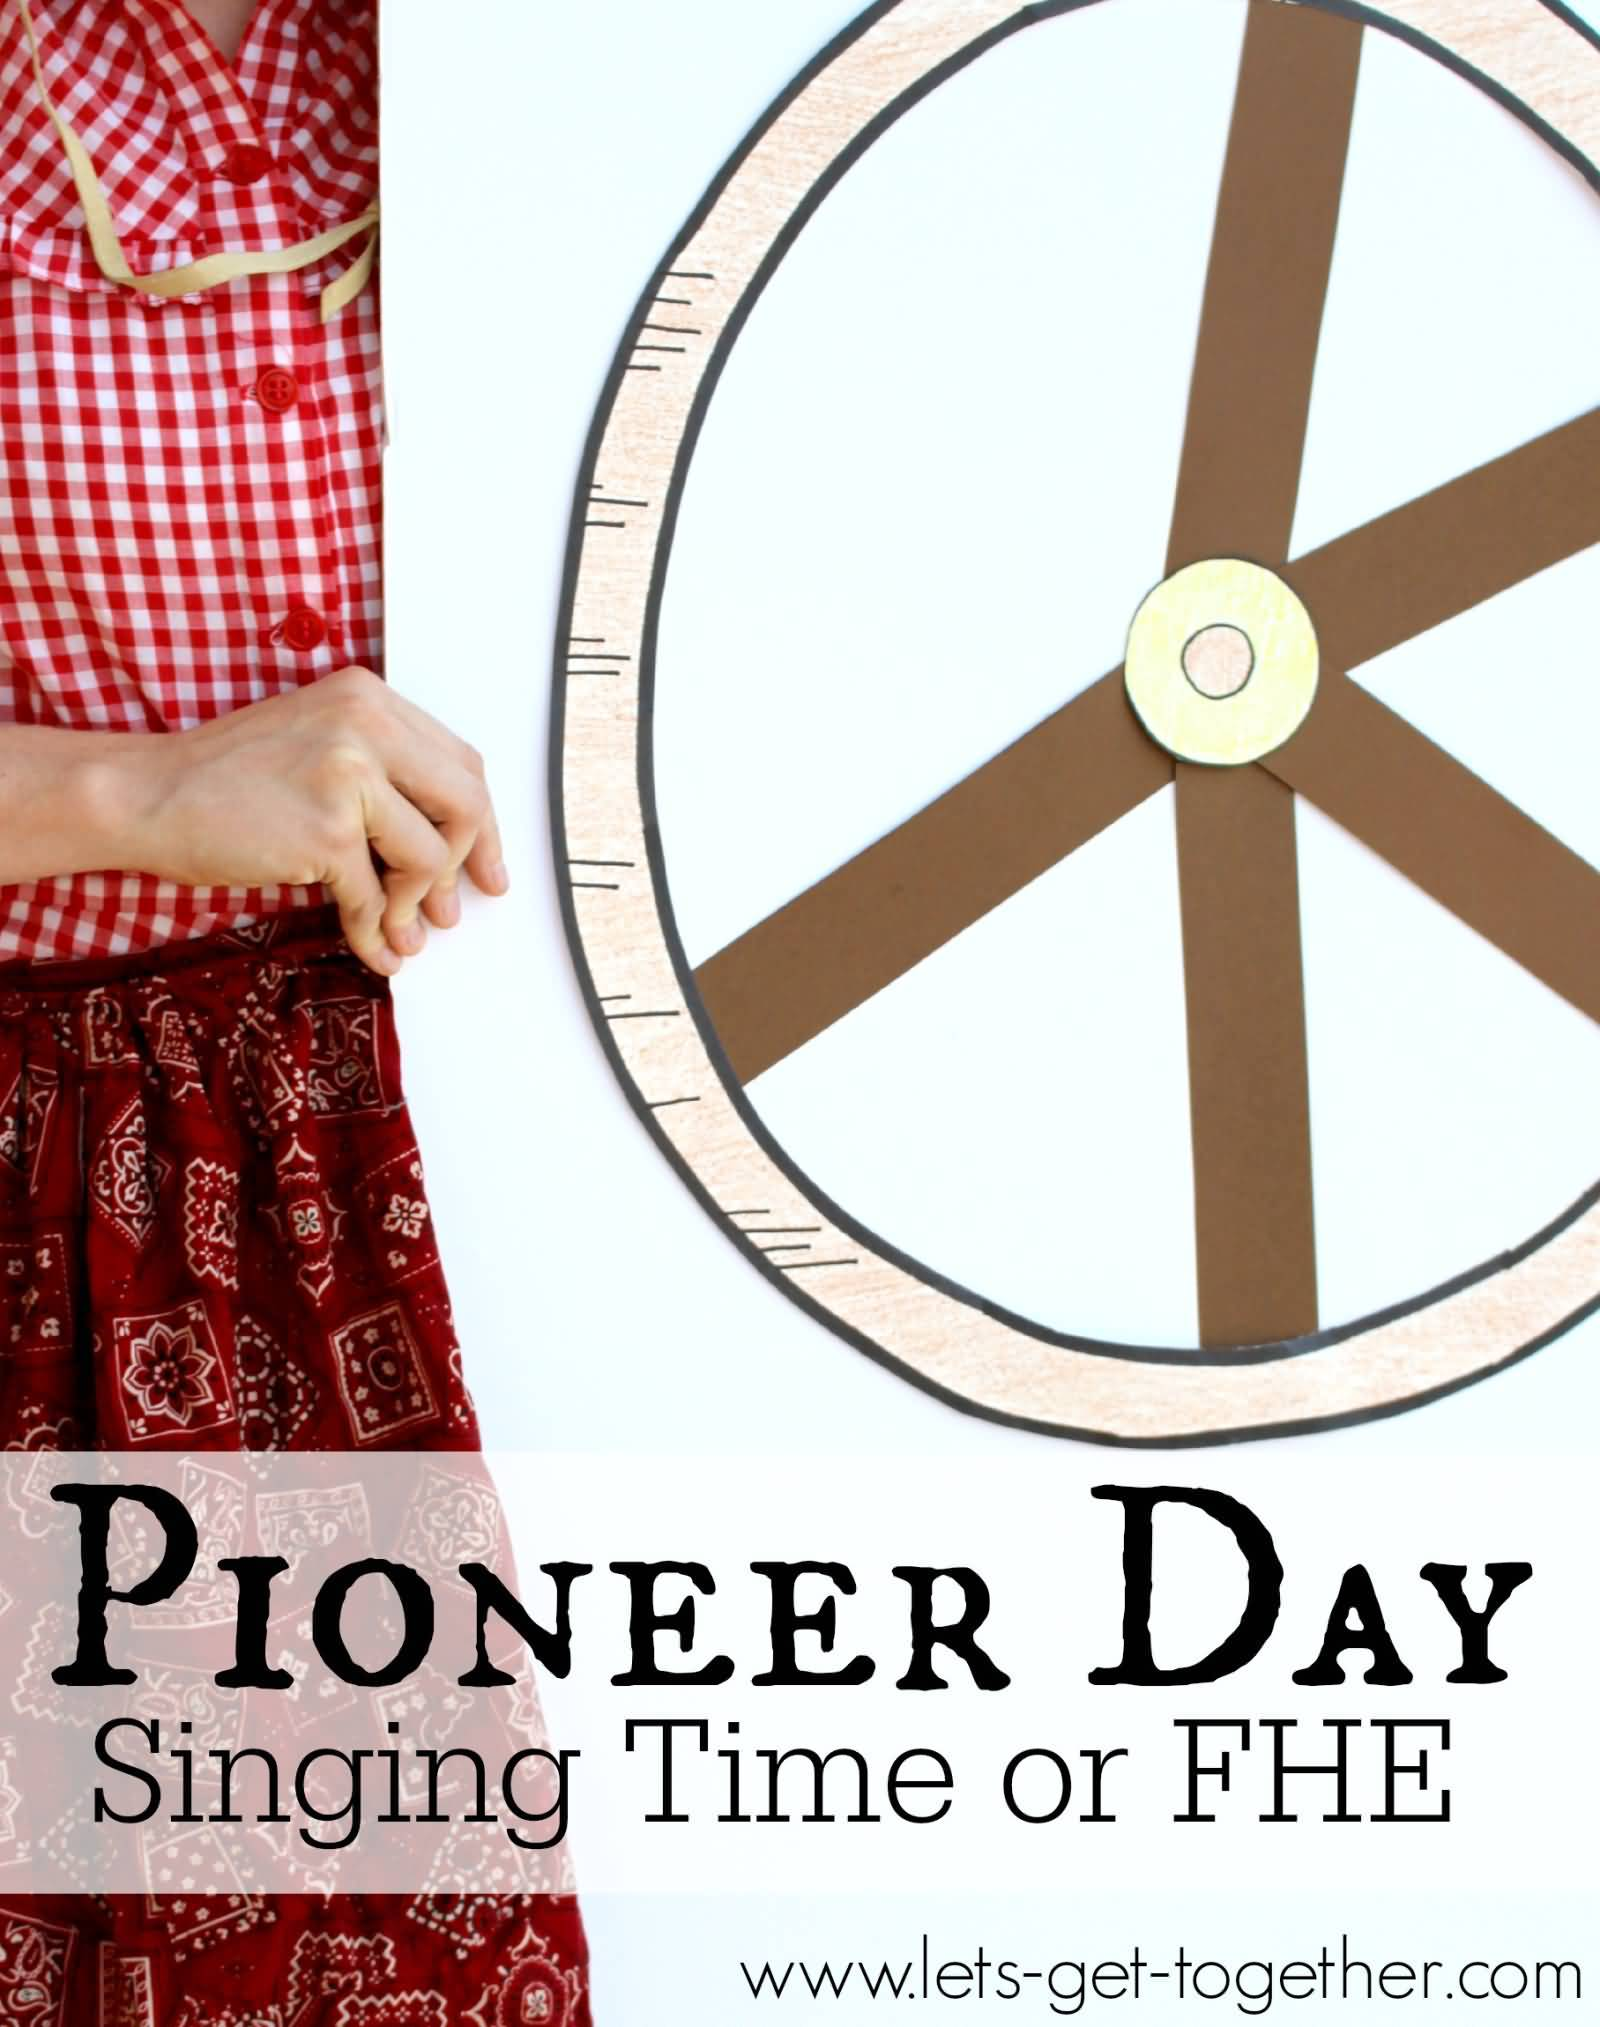 41 Best Pioneer Day 2016 Pictures And Images